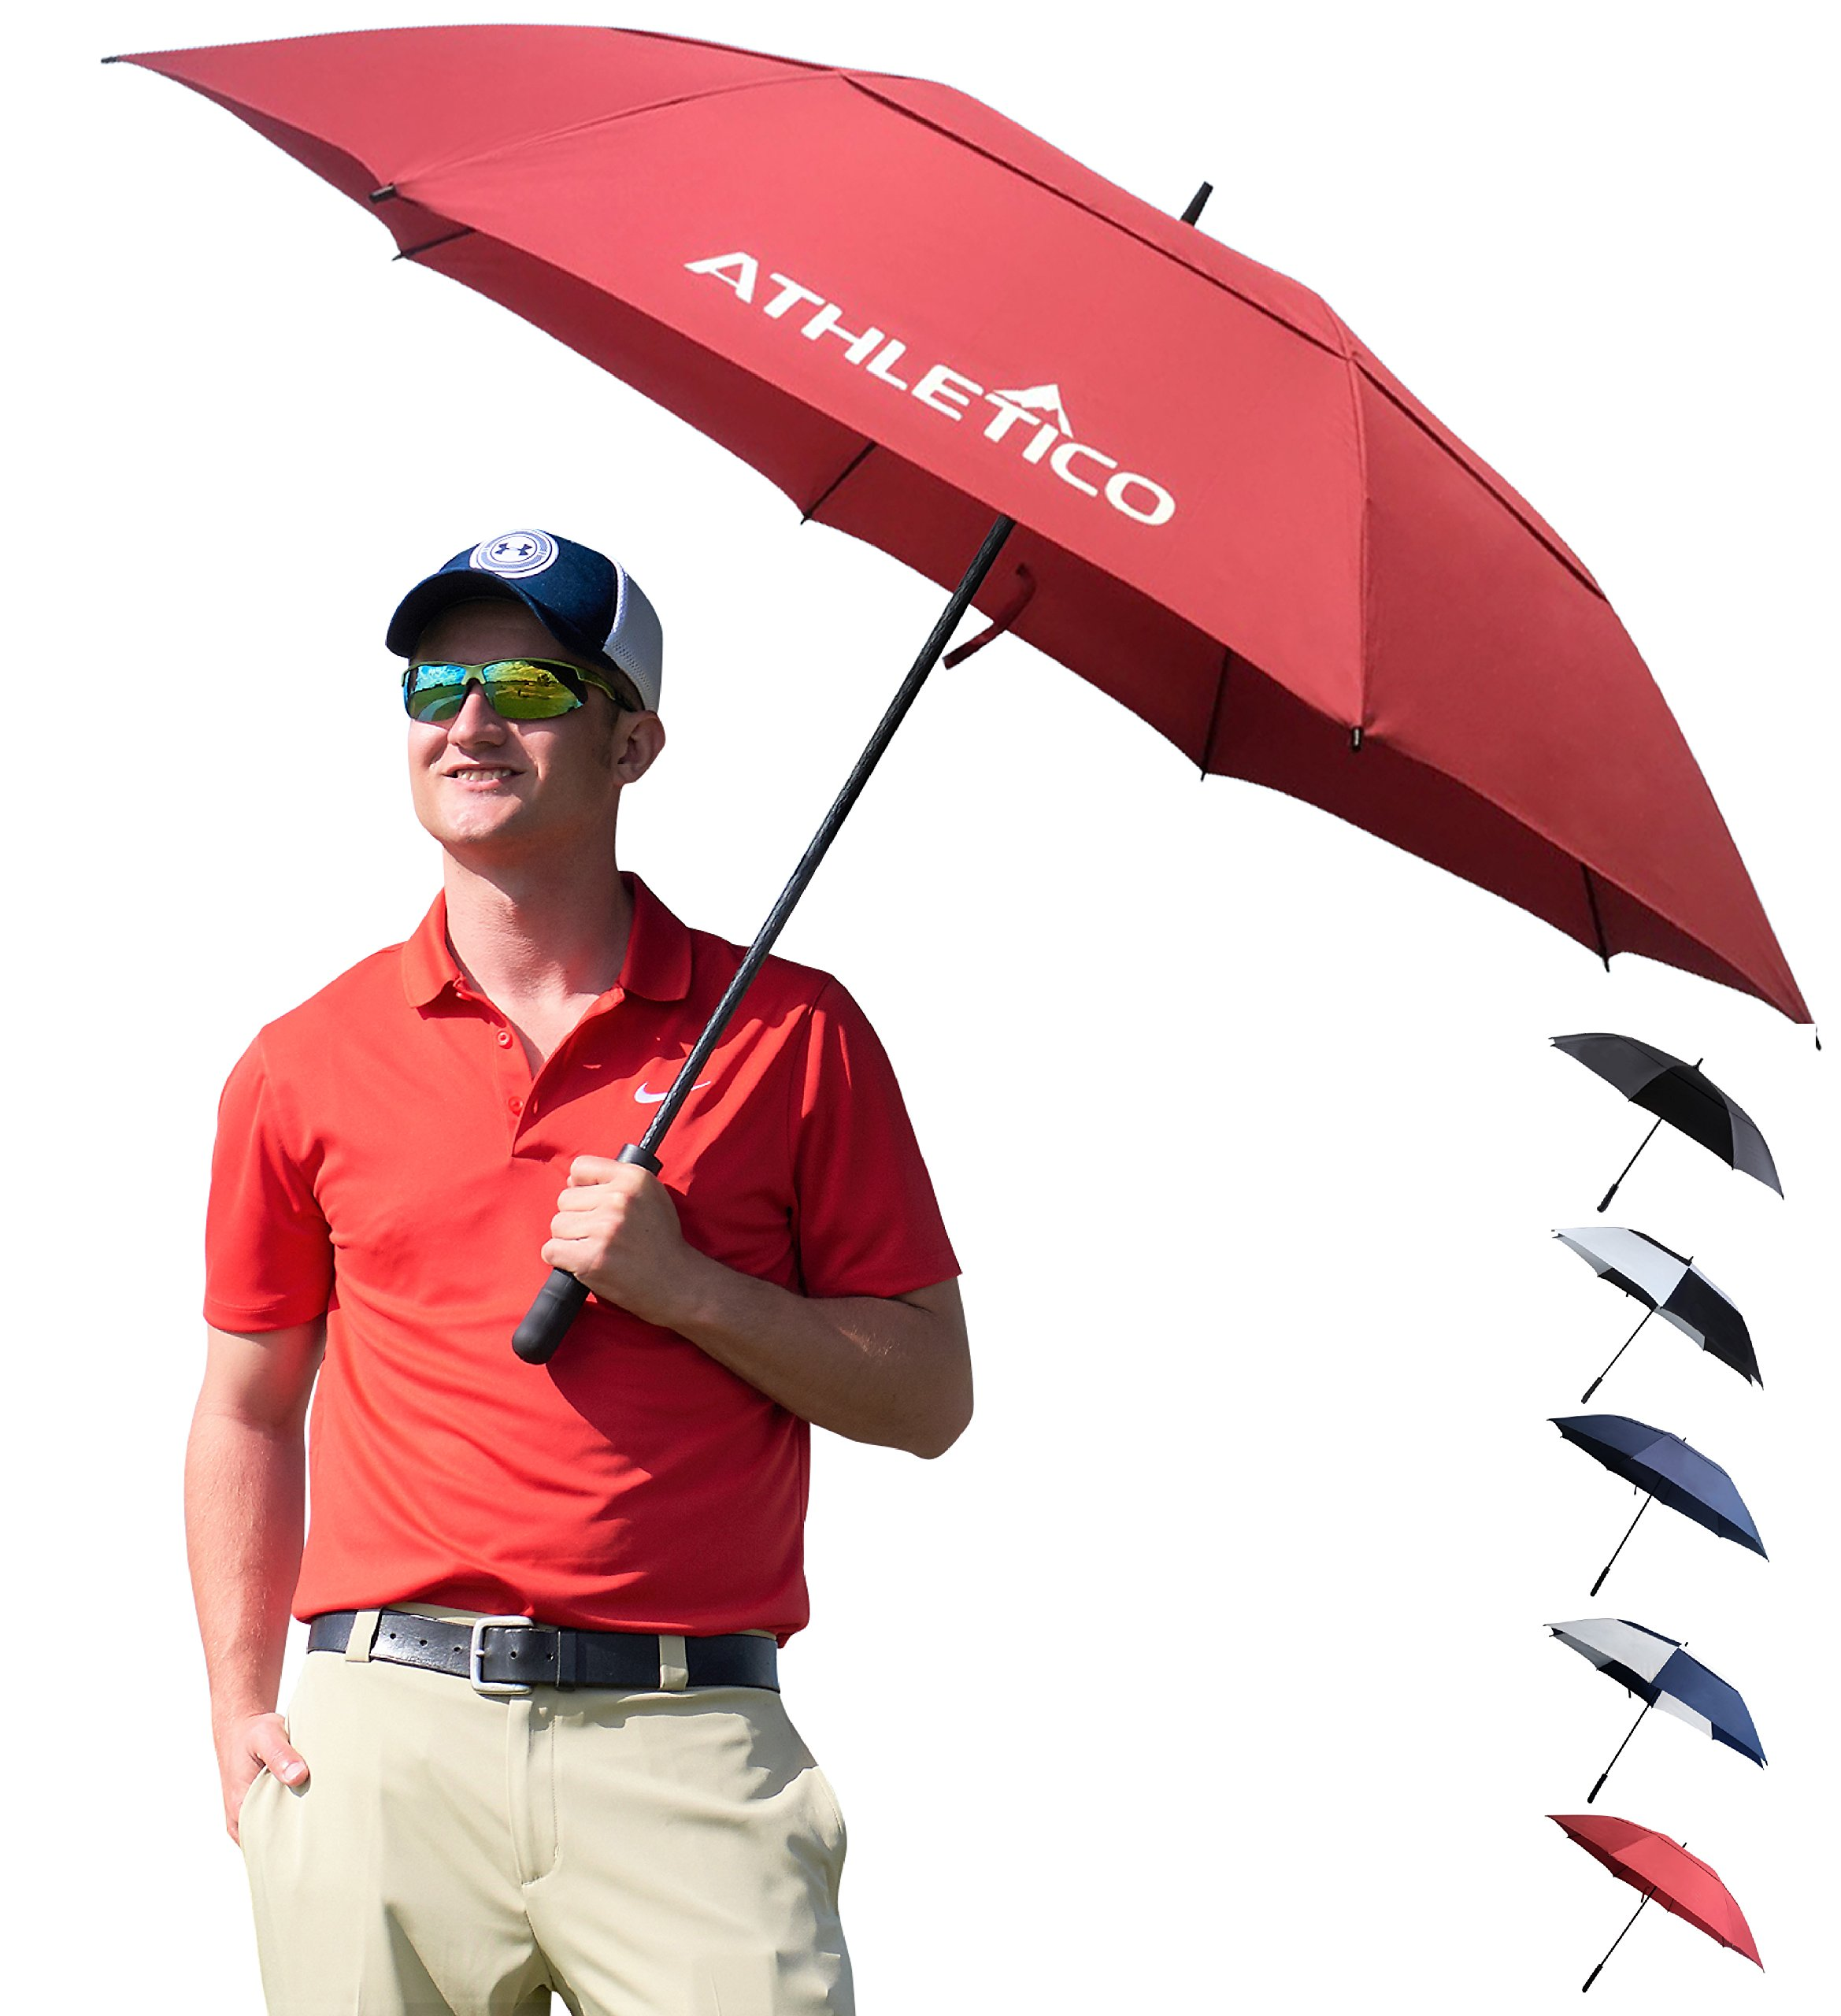 Athletico 68 inch Automatic Open Golf Umbrella - Extra Large Double Canopy Umbrella is Windproof and Waterproof - Features Ergonomic Rubber Handle (Wine Red, 68 inch)